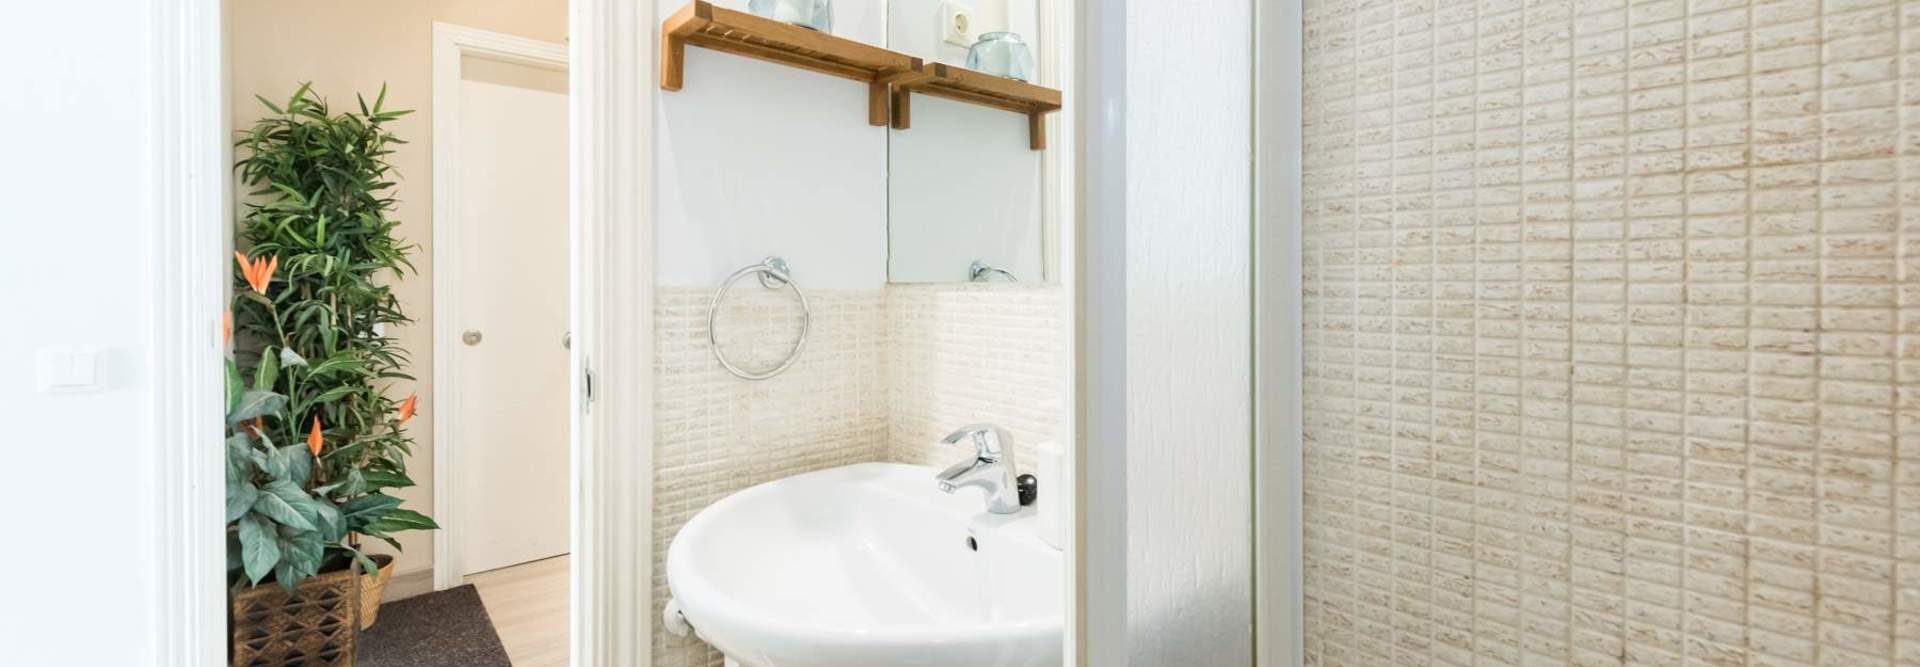 Home alquiler apartamento madrid centro mad4rent  8